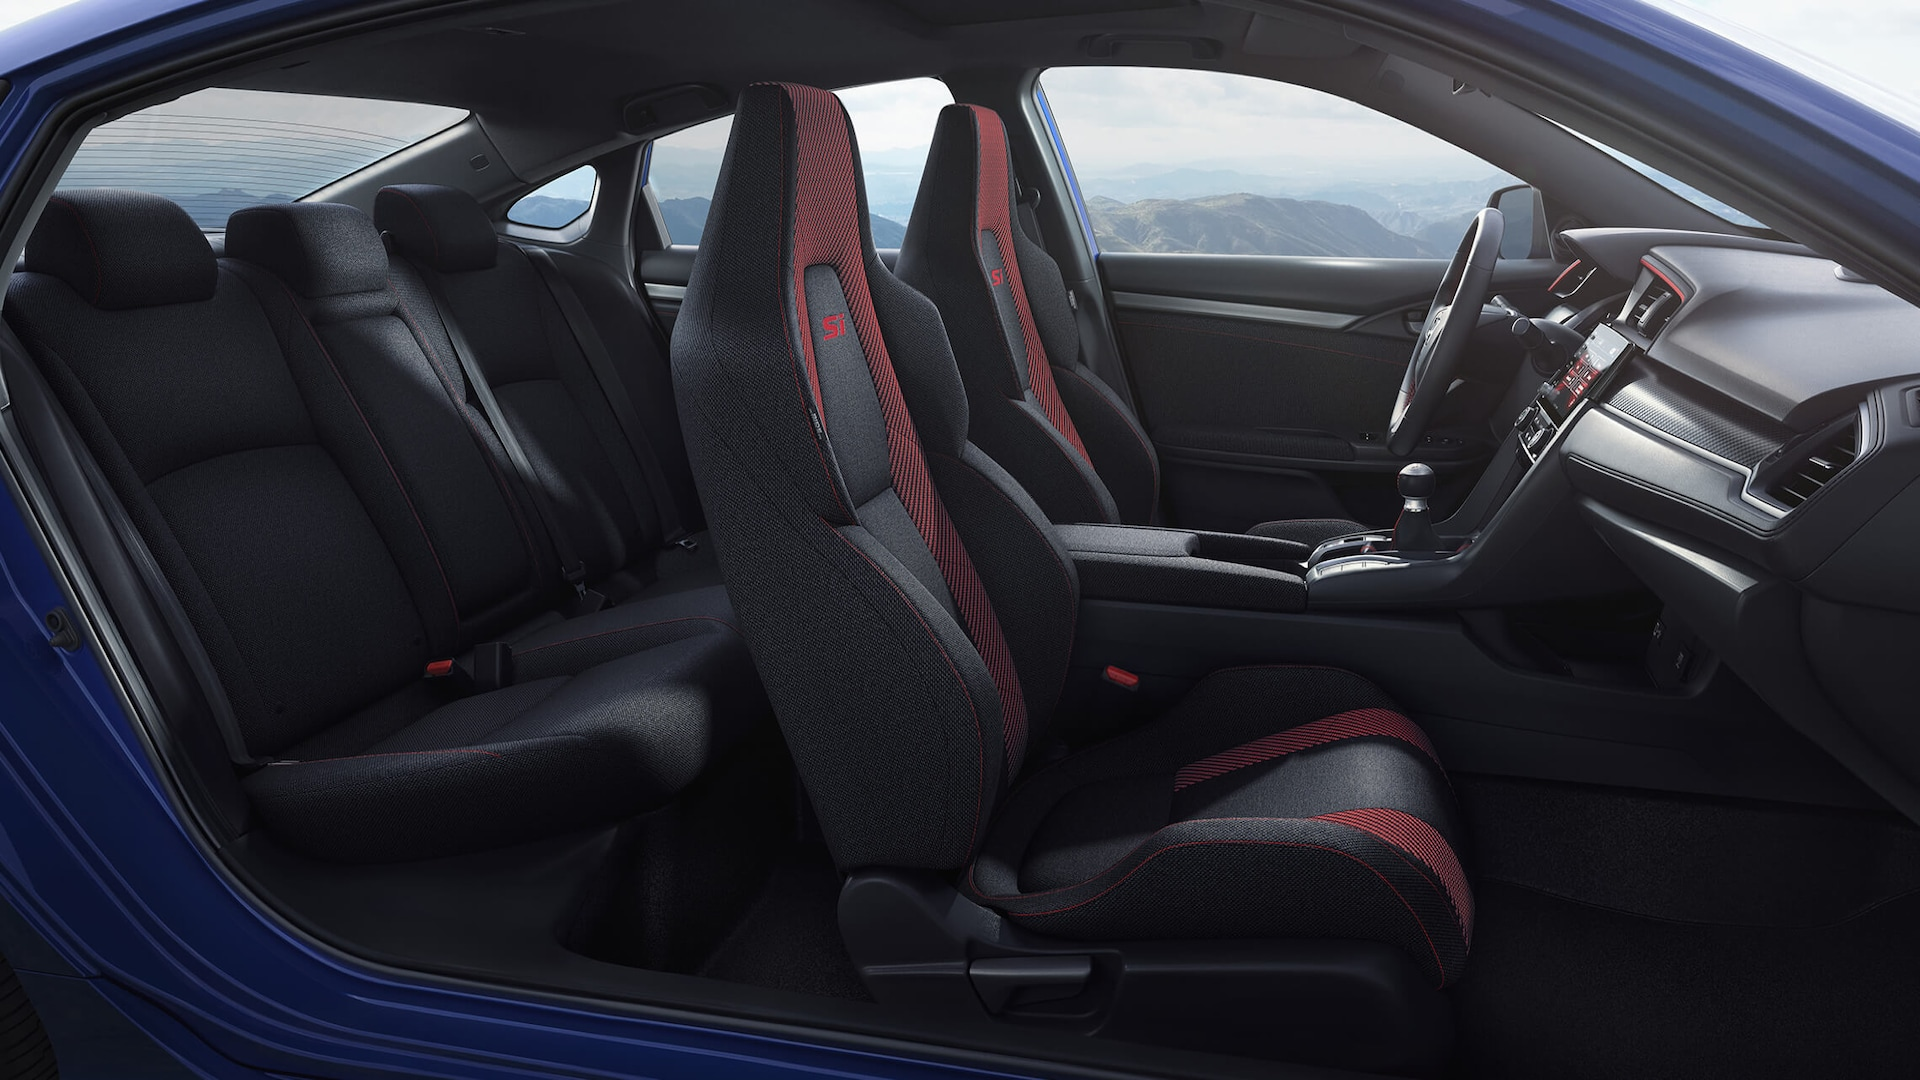 Passenger's side interior view of front seats in 2020 Honda Civic Si Sedan in Black Cloth.